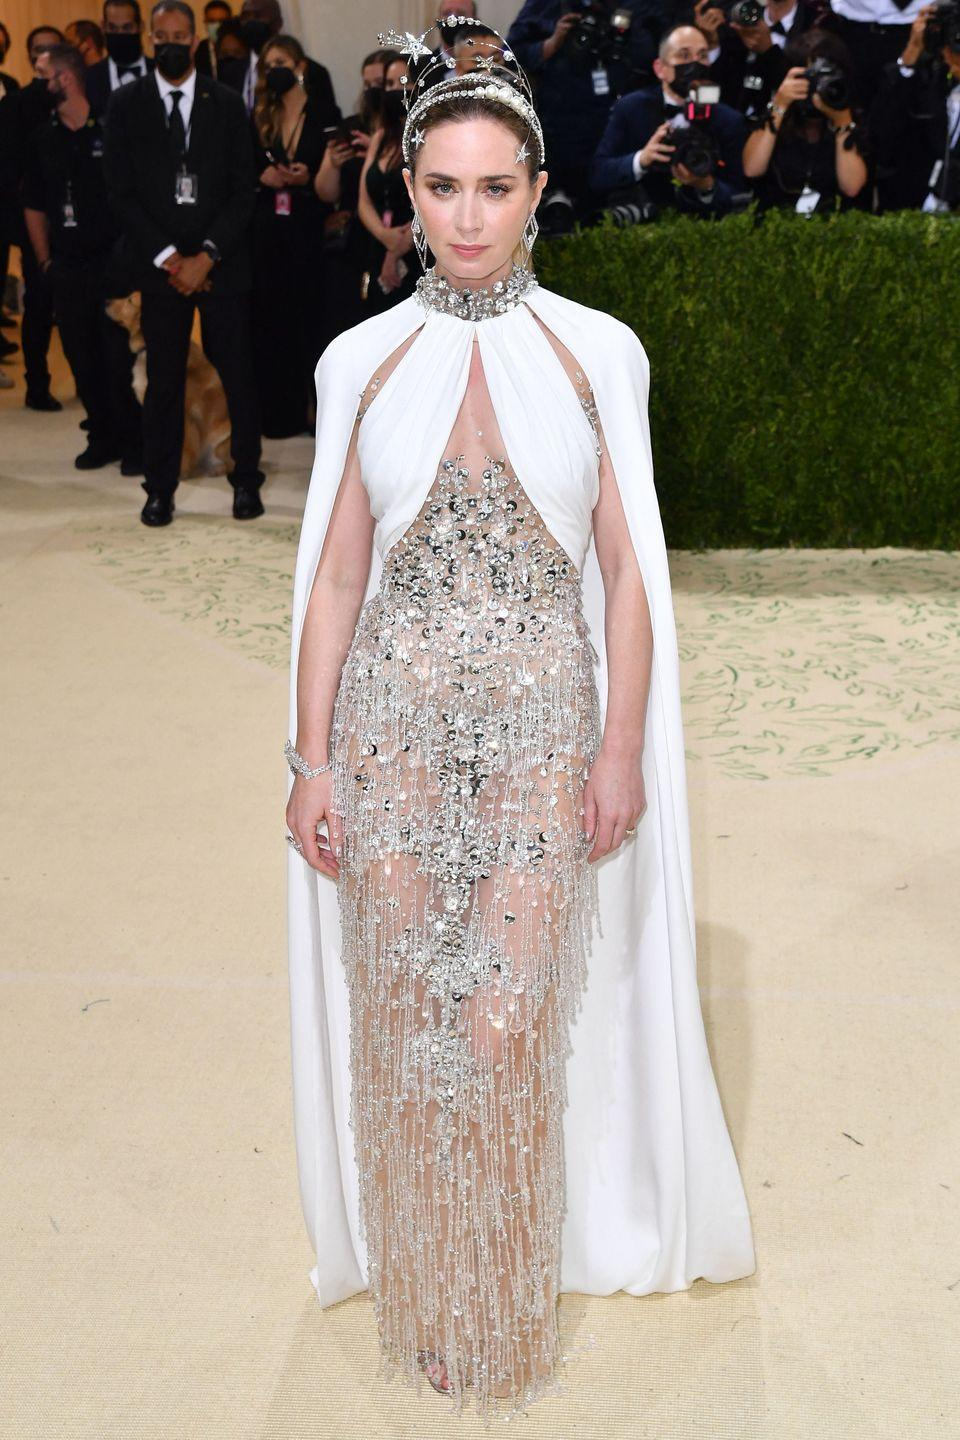 <p>Emily Blunt wore a Miu Miu glass raindrop shape beaded dress and headpiece, inspired by the Statue of Liberty. </p>